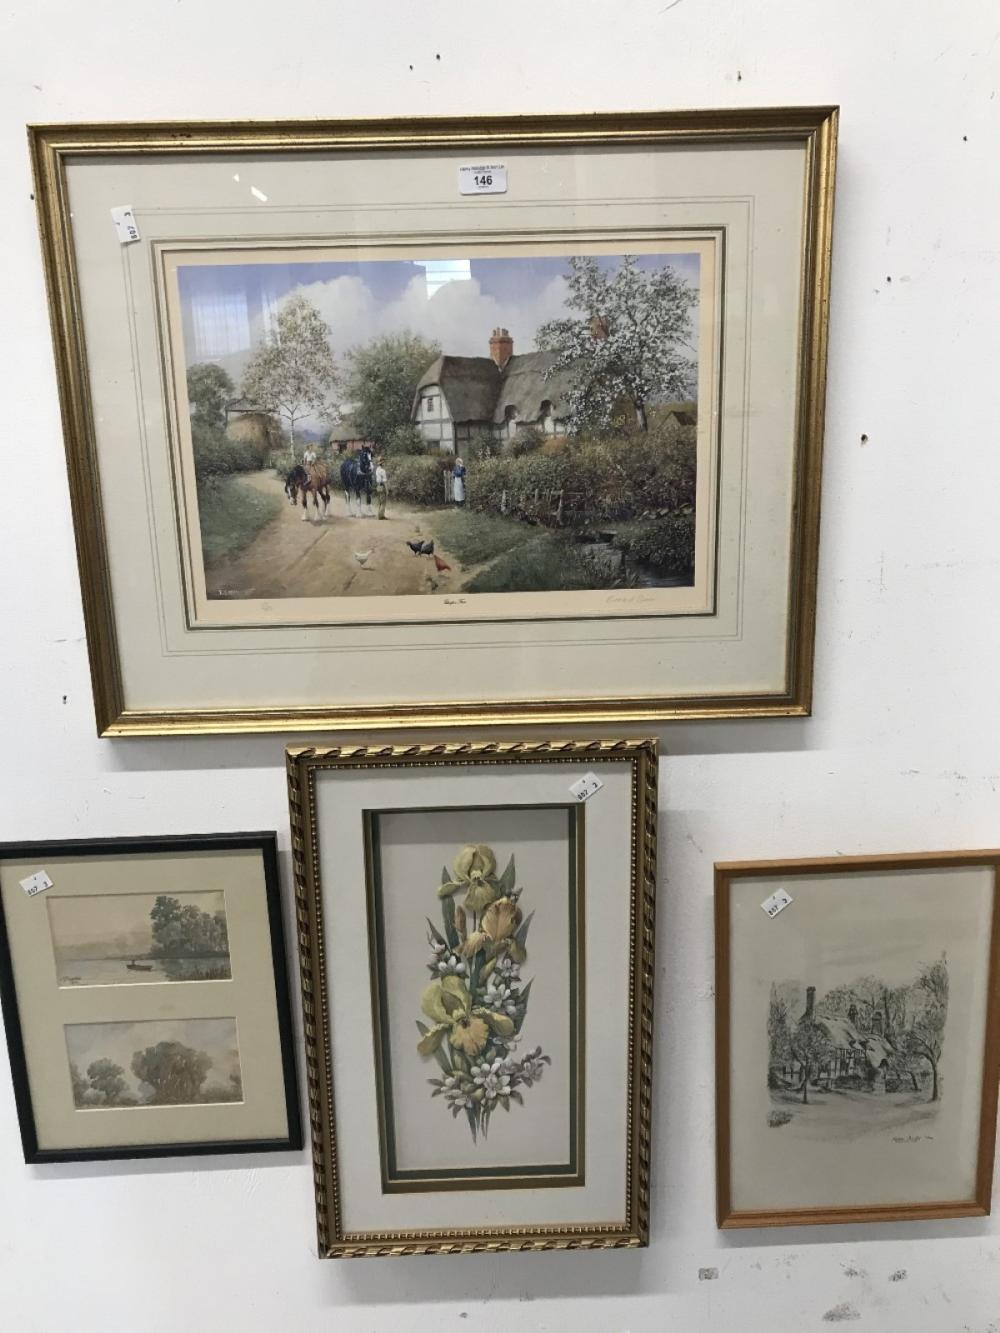 English School: 20th cent. Watercolours & ink, plus a study of orchids & daisies in relief. A limite